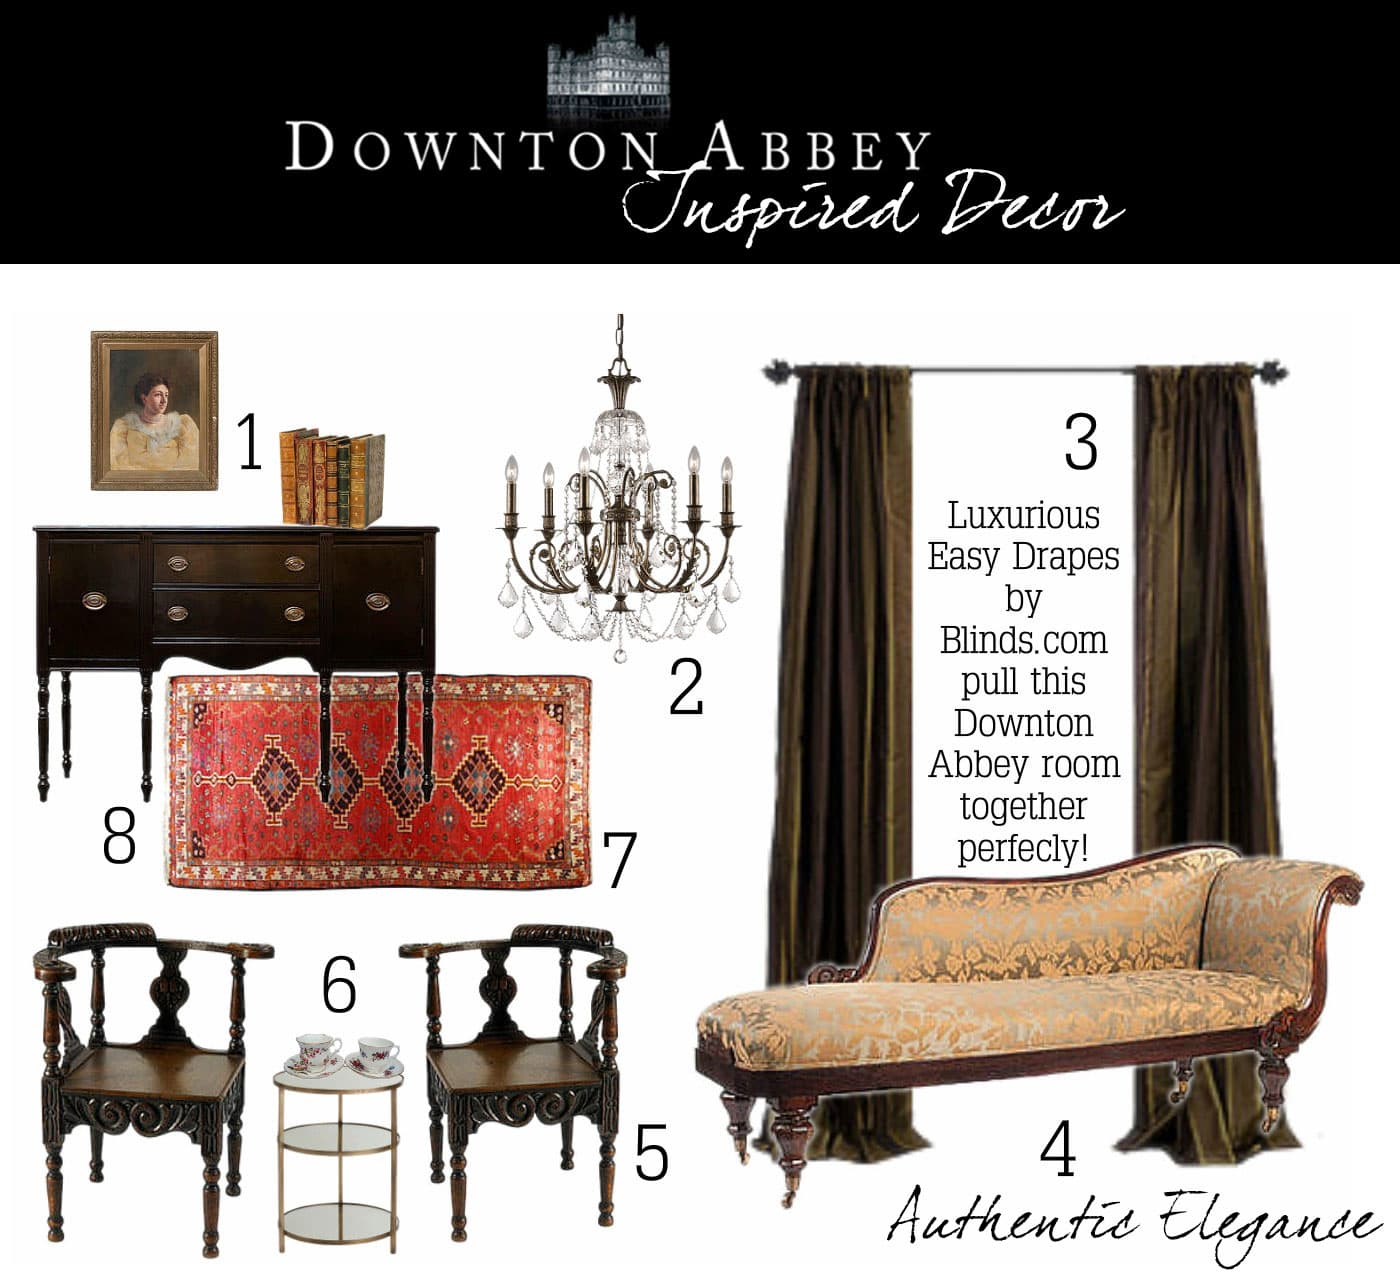 Downton Abbey Living2 In the Lap of Luxury   Downton Abbey Inspired Decor